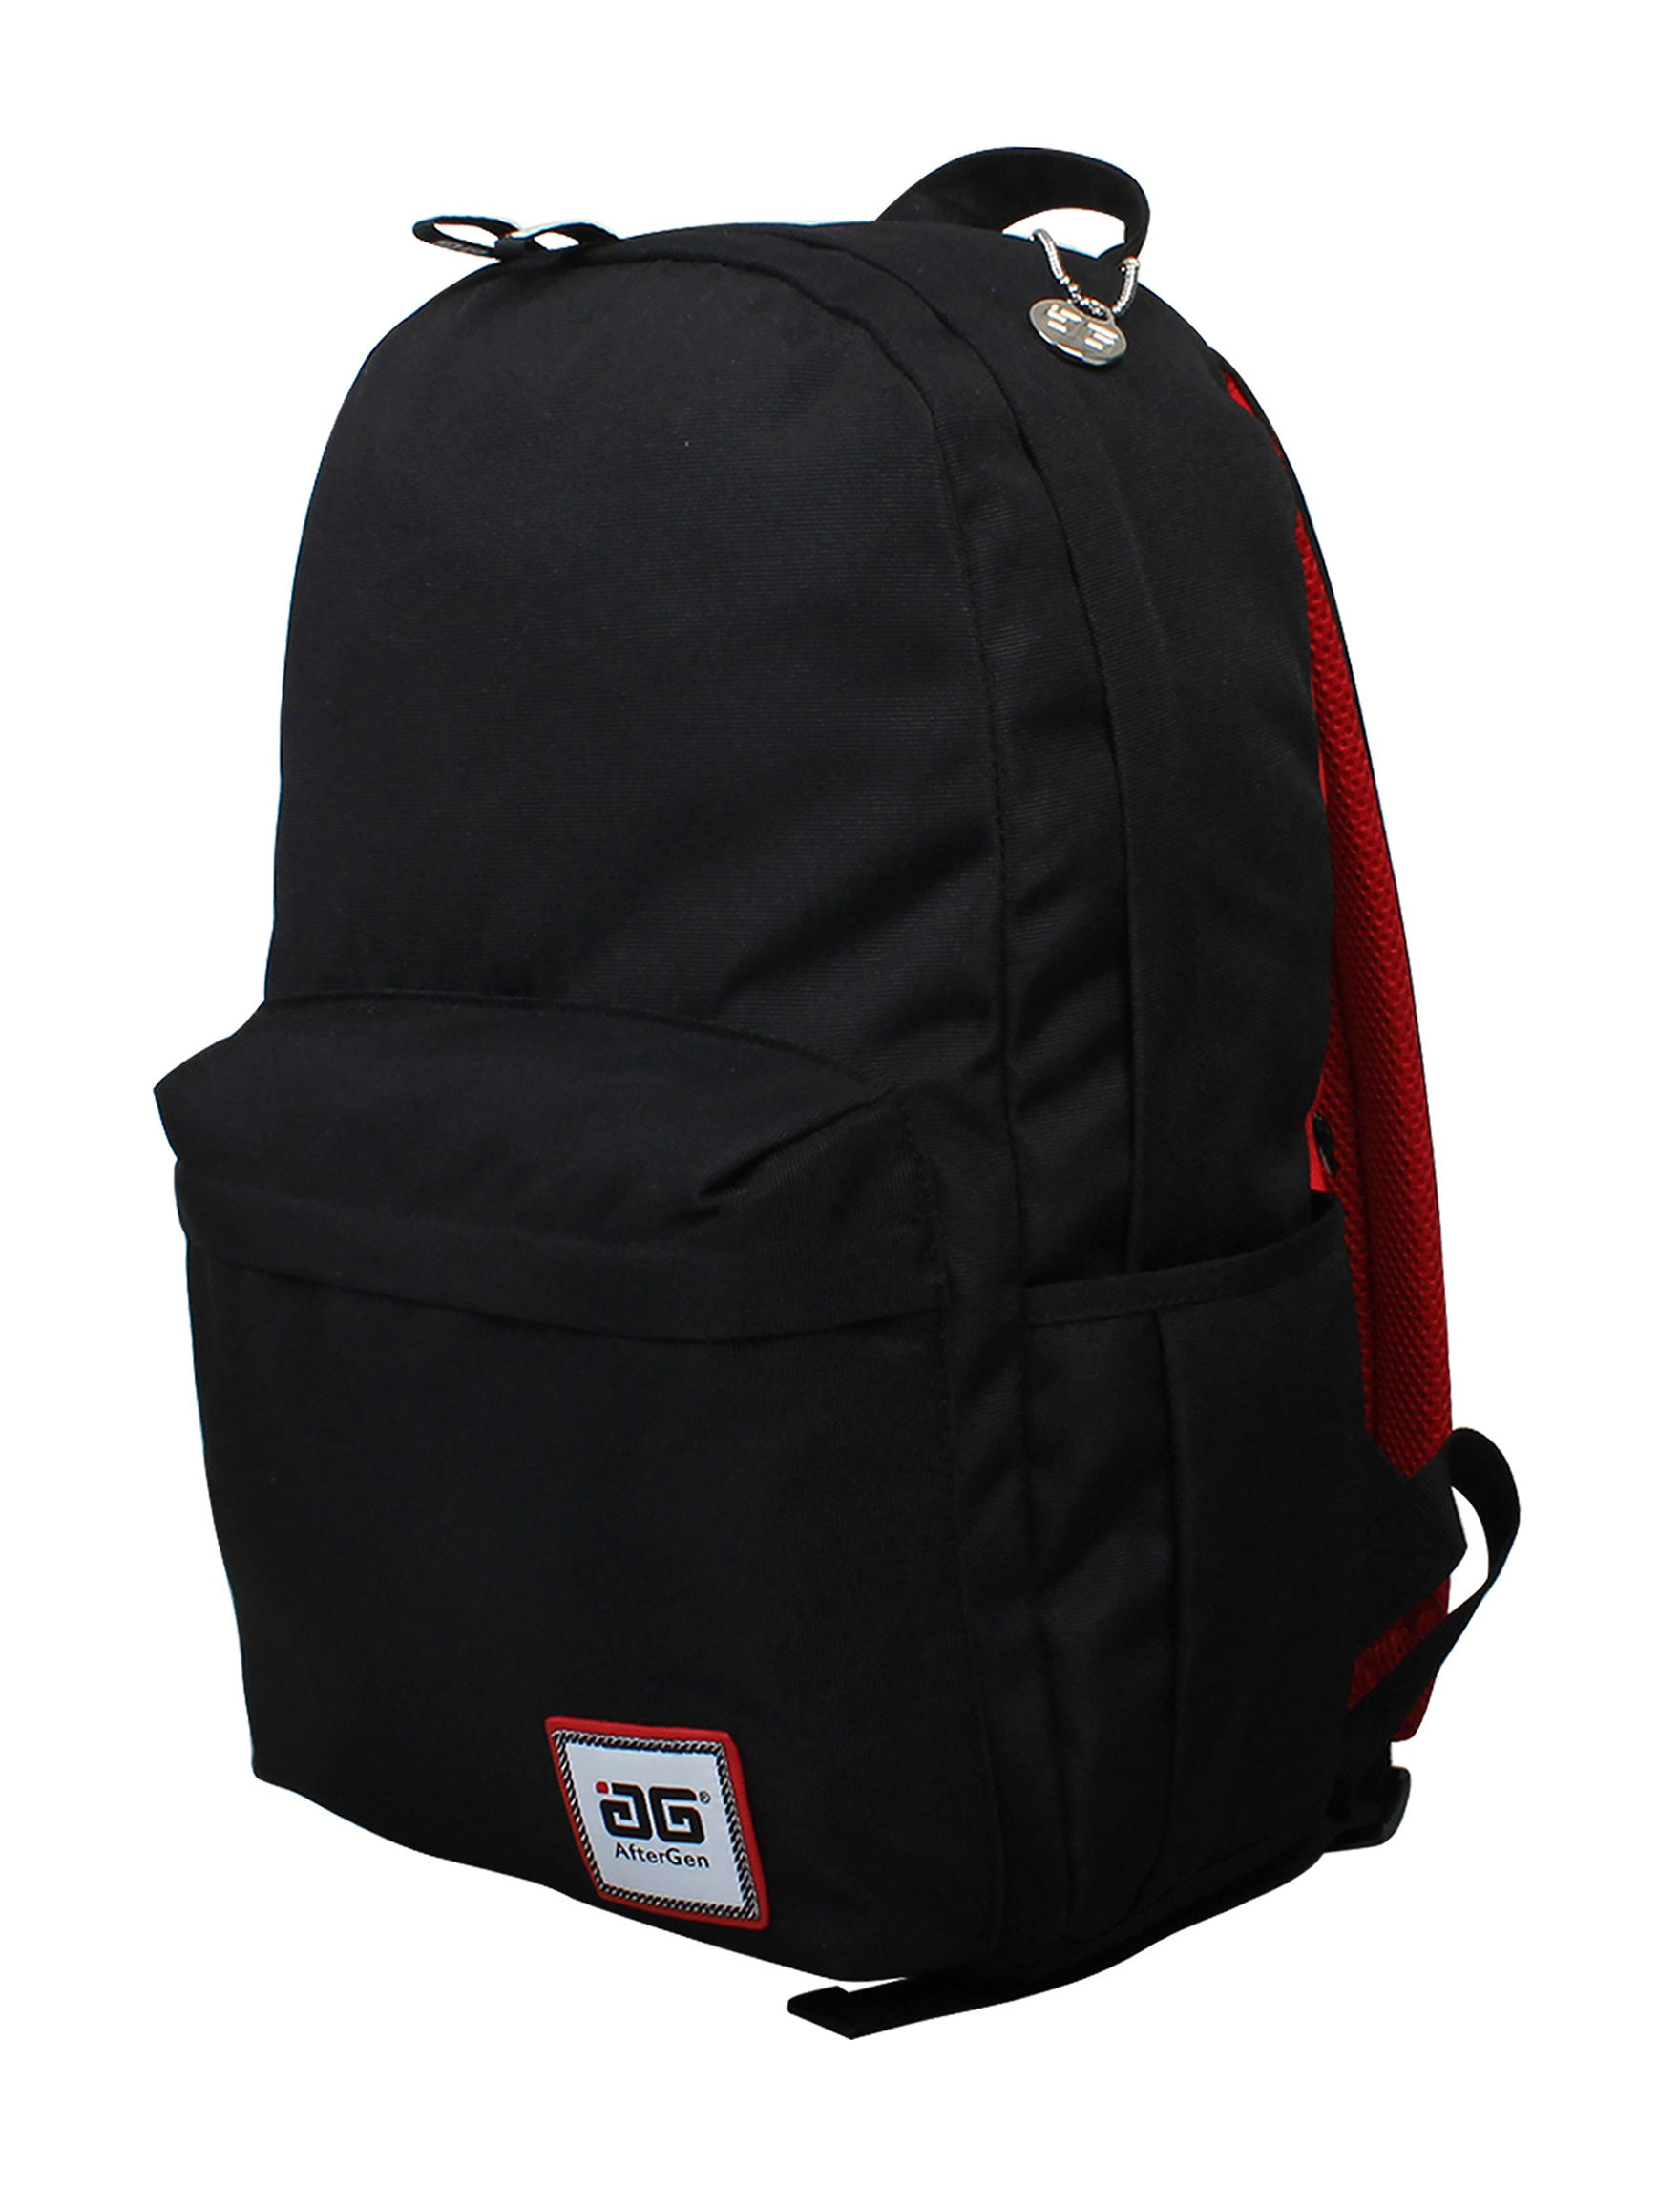 Aftergen Black / Red Bookbags & Backpacks